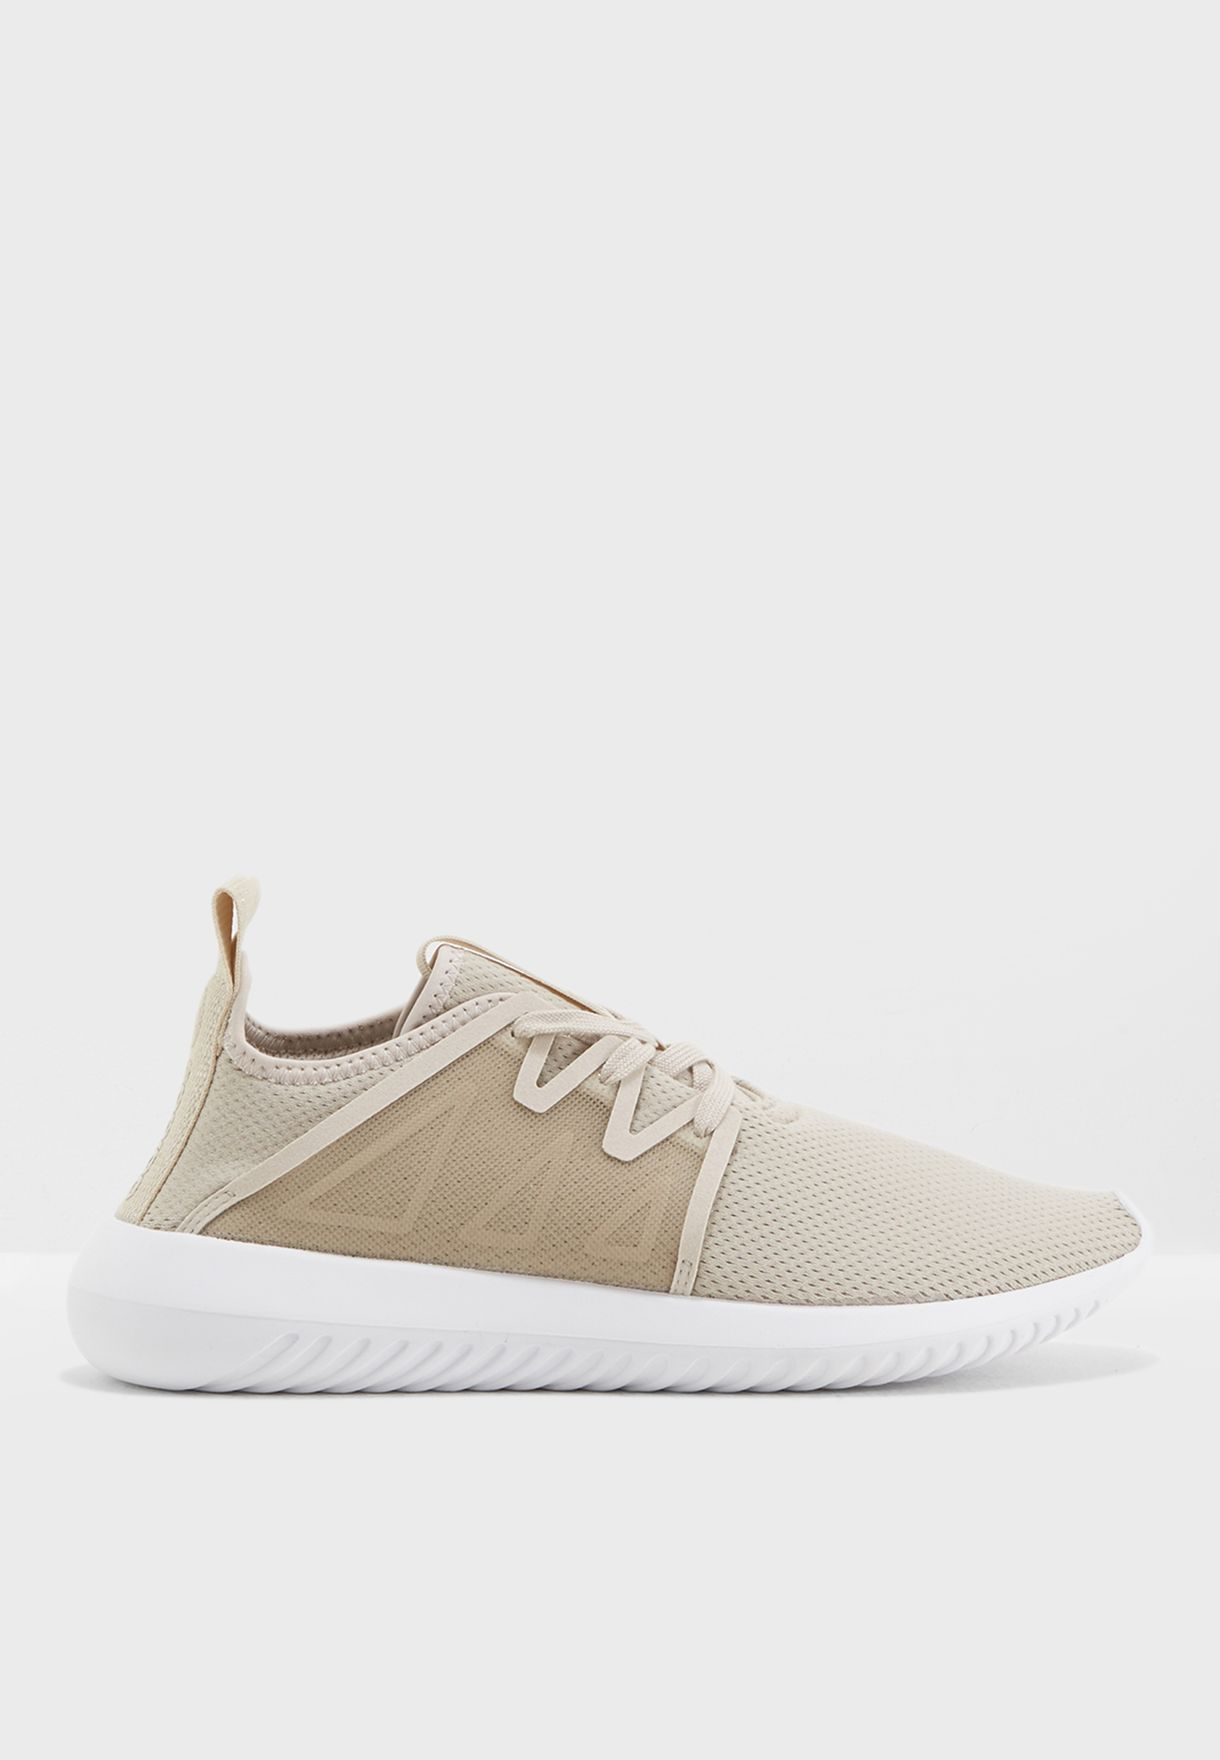 4bffccb7af1c Shop adidas Originals beige Tubular Viral 2 CQ3012 for Women in UAE ...